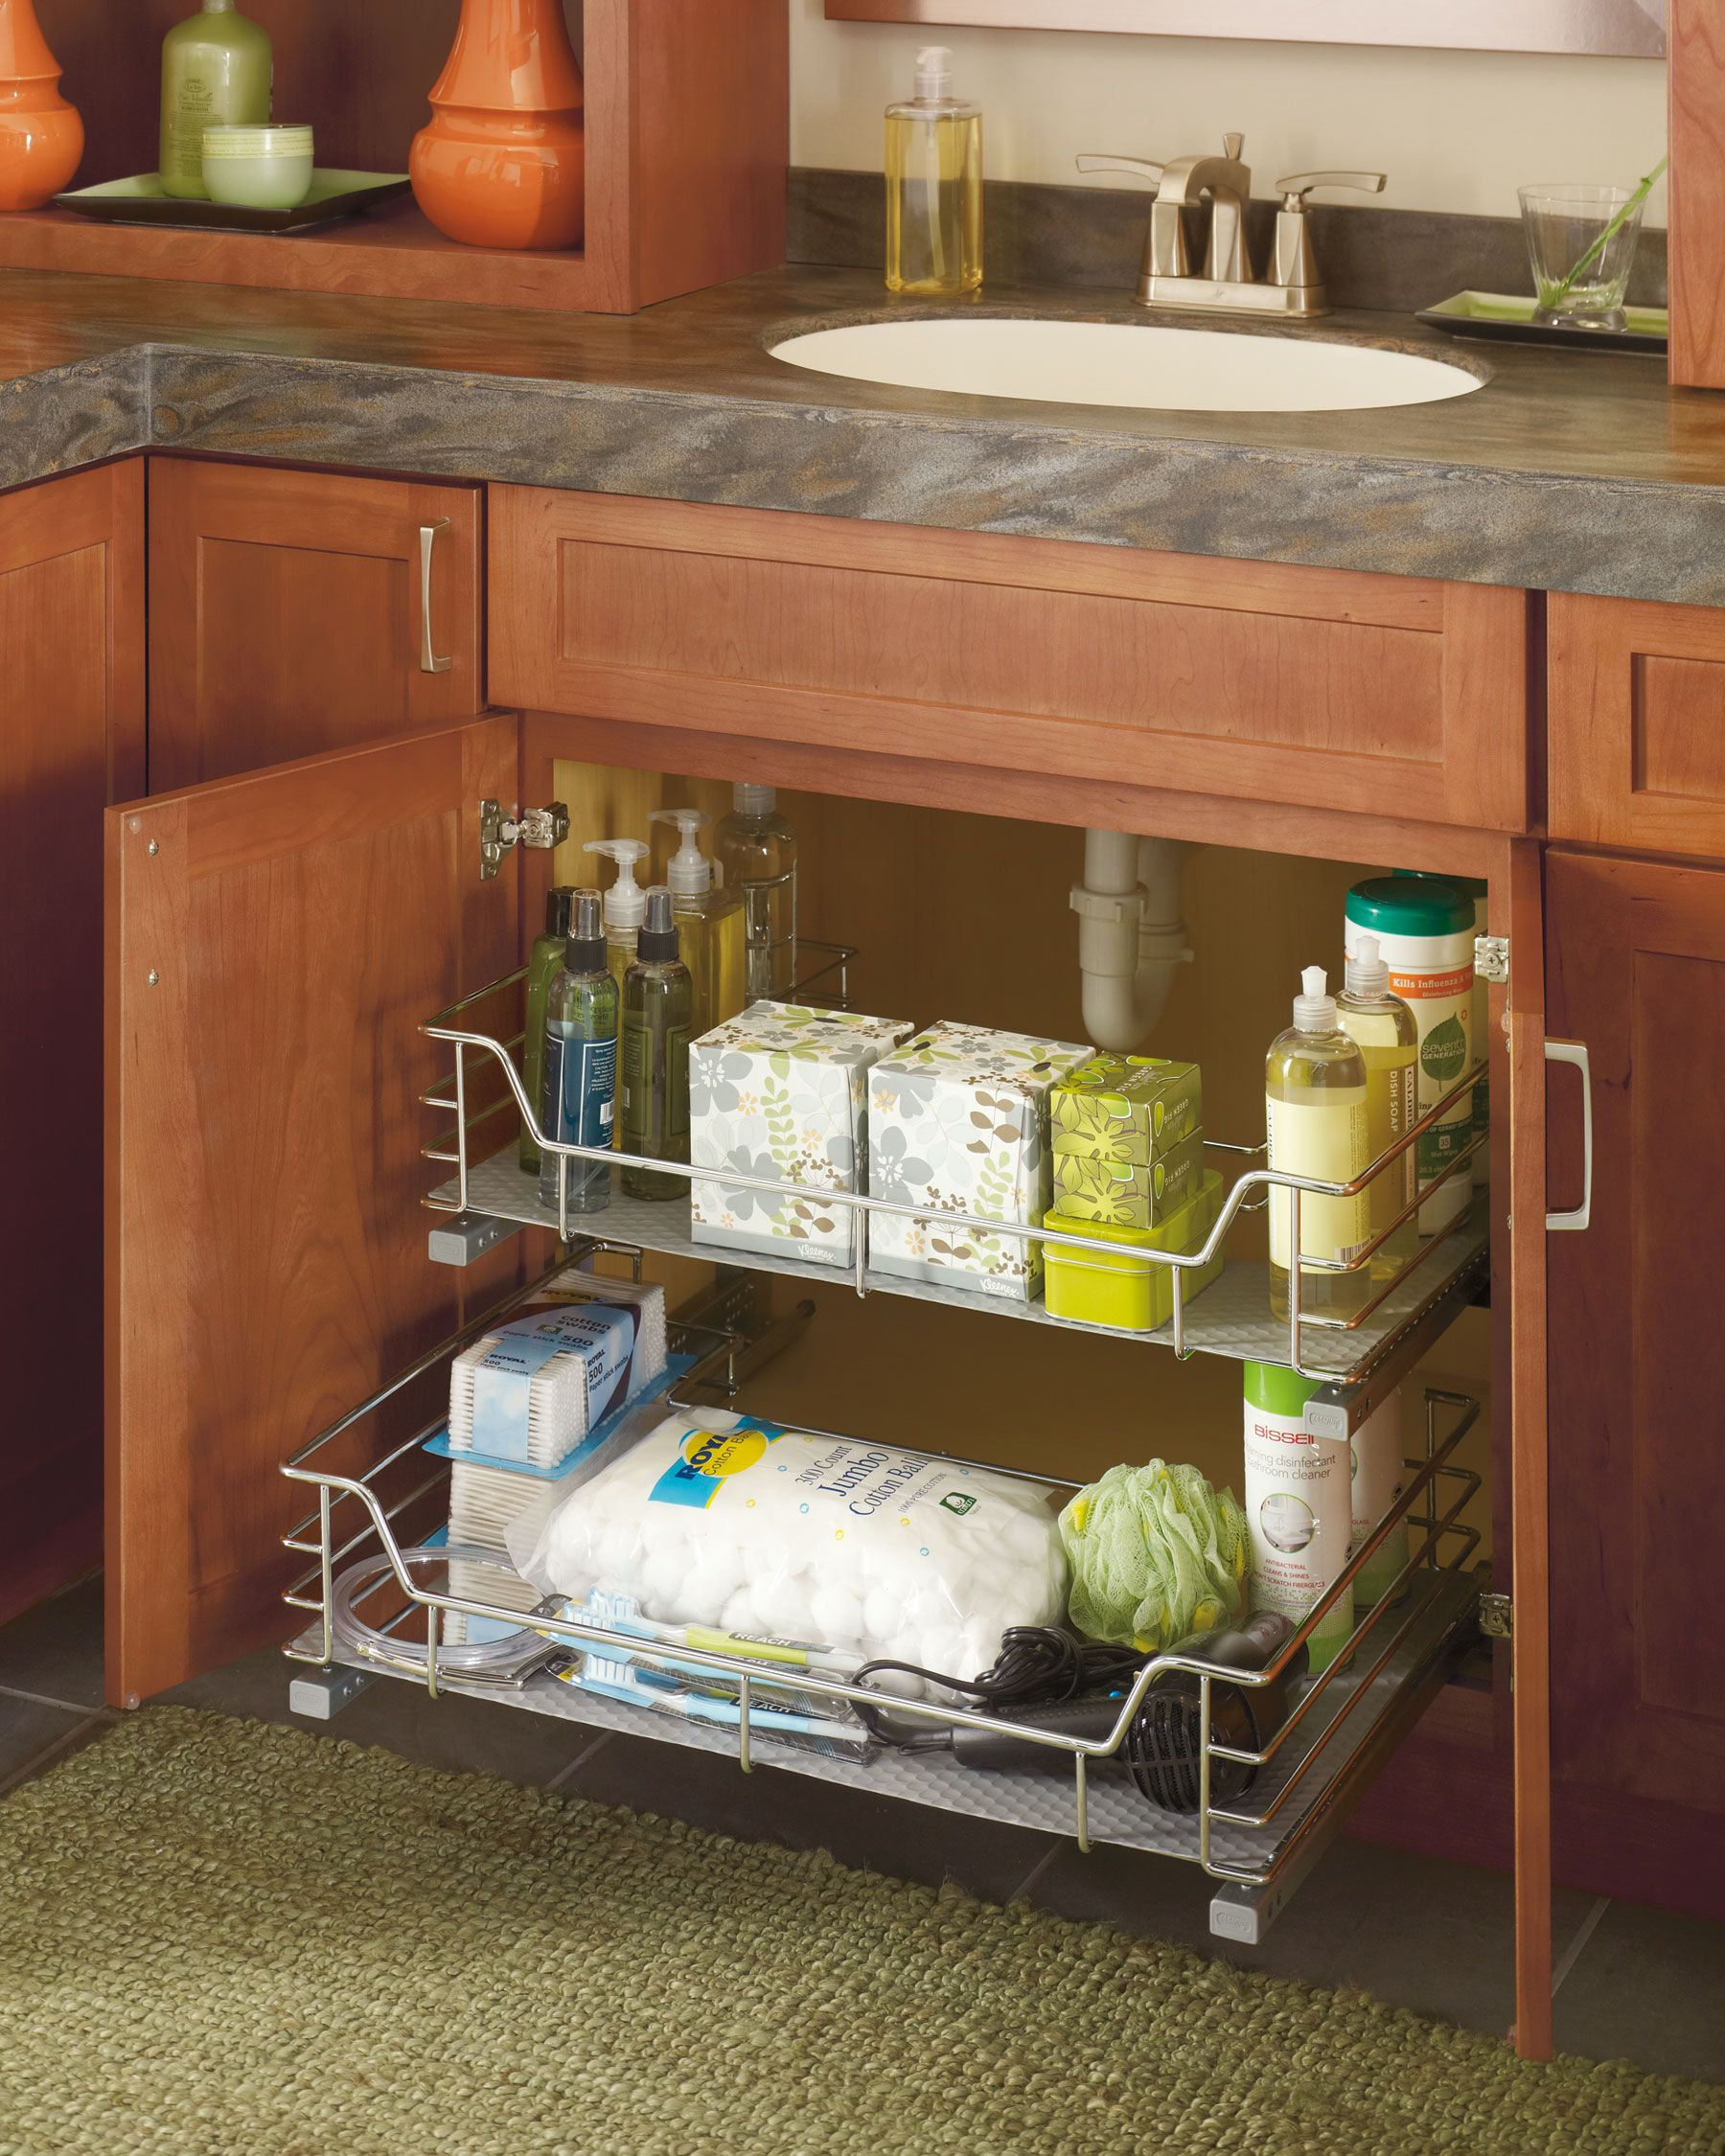 Can I Use Kitchen Cabinets In The Bathroom: Thanks To Diamond, You Can Tidy Your Bathroom Counters By